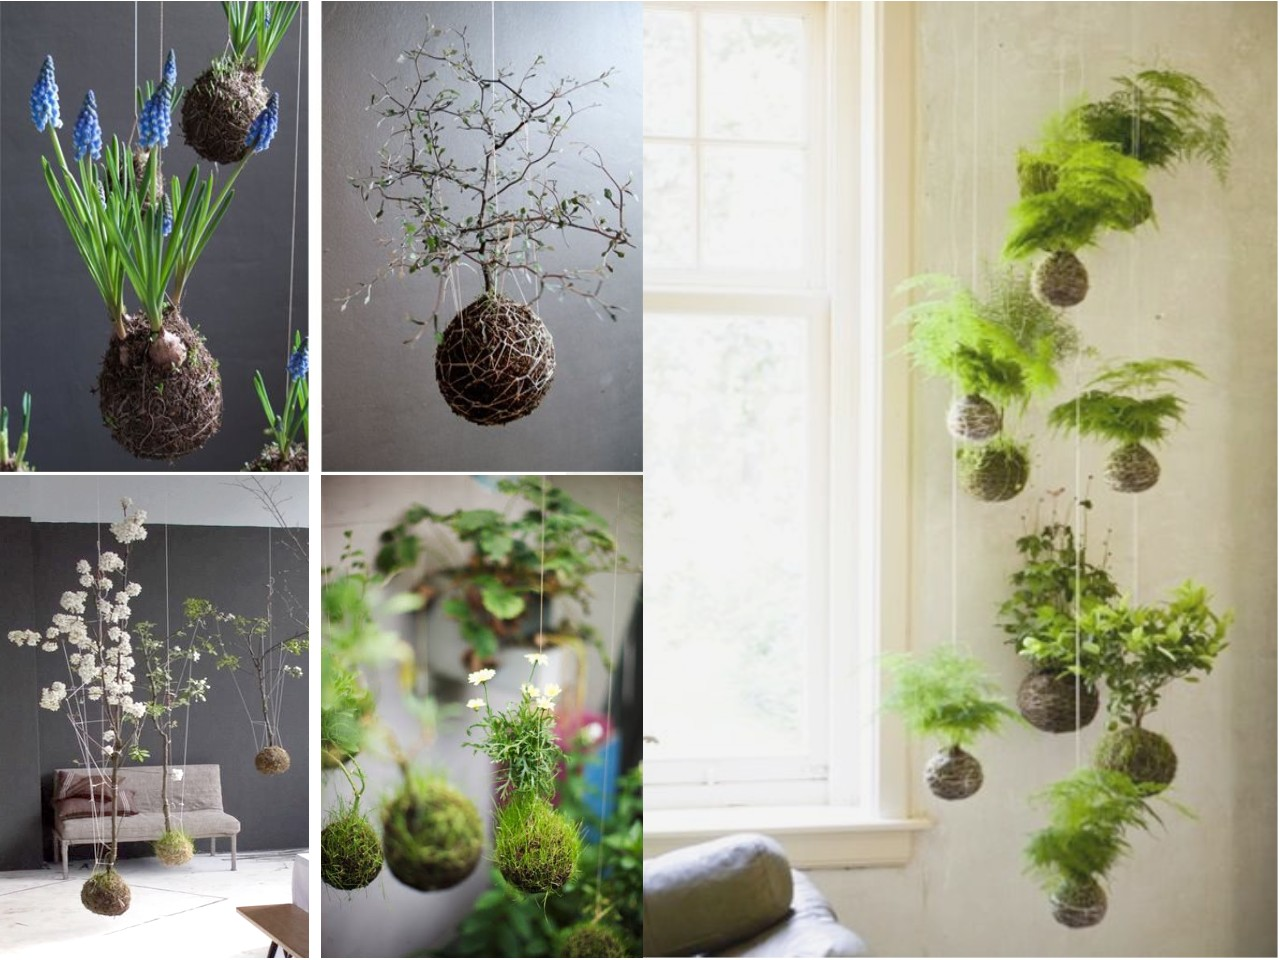 10 ideas de decoraci n con plantas colgantes for Decoracion jardin plantas